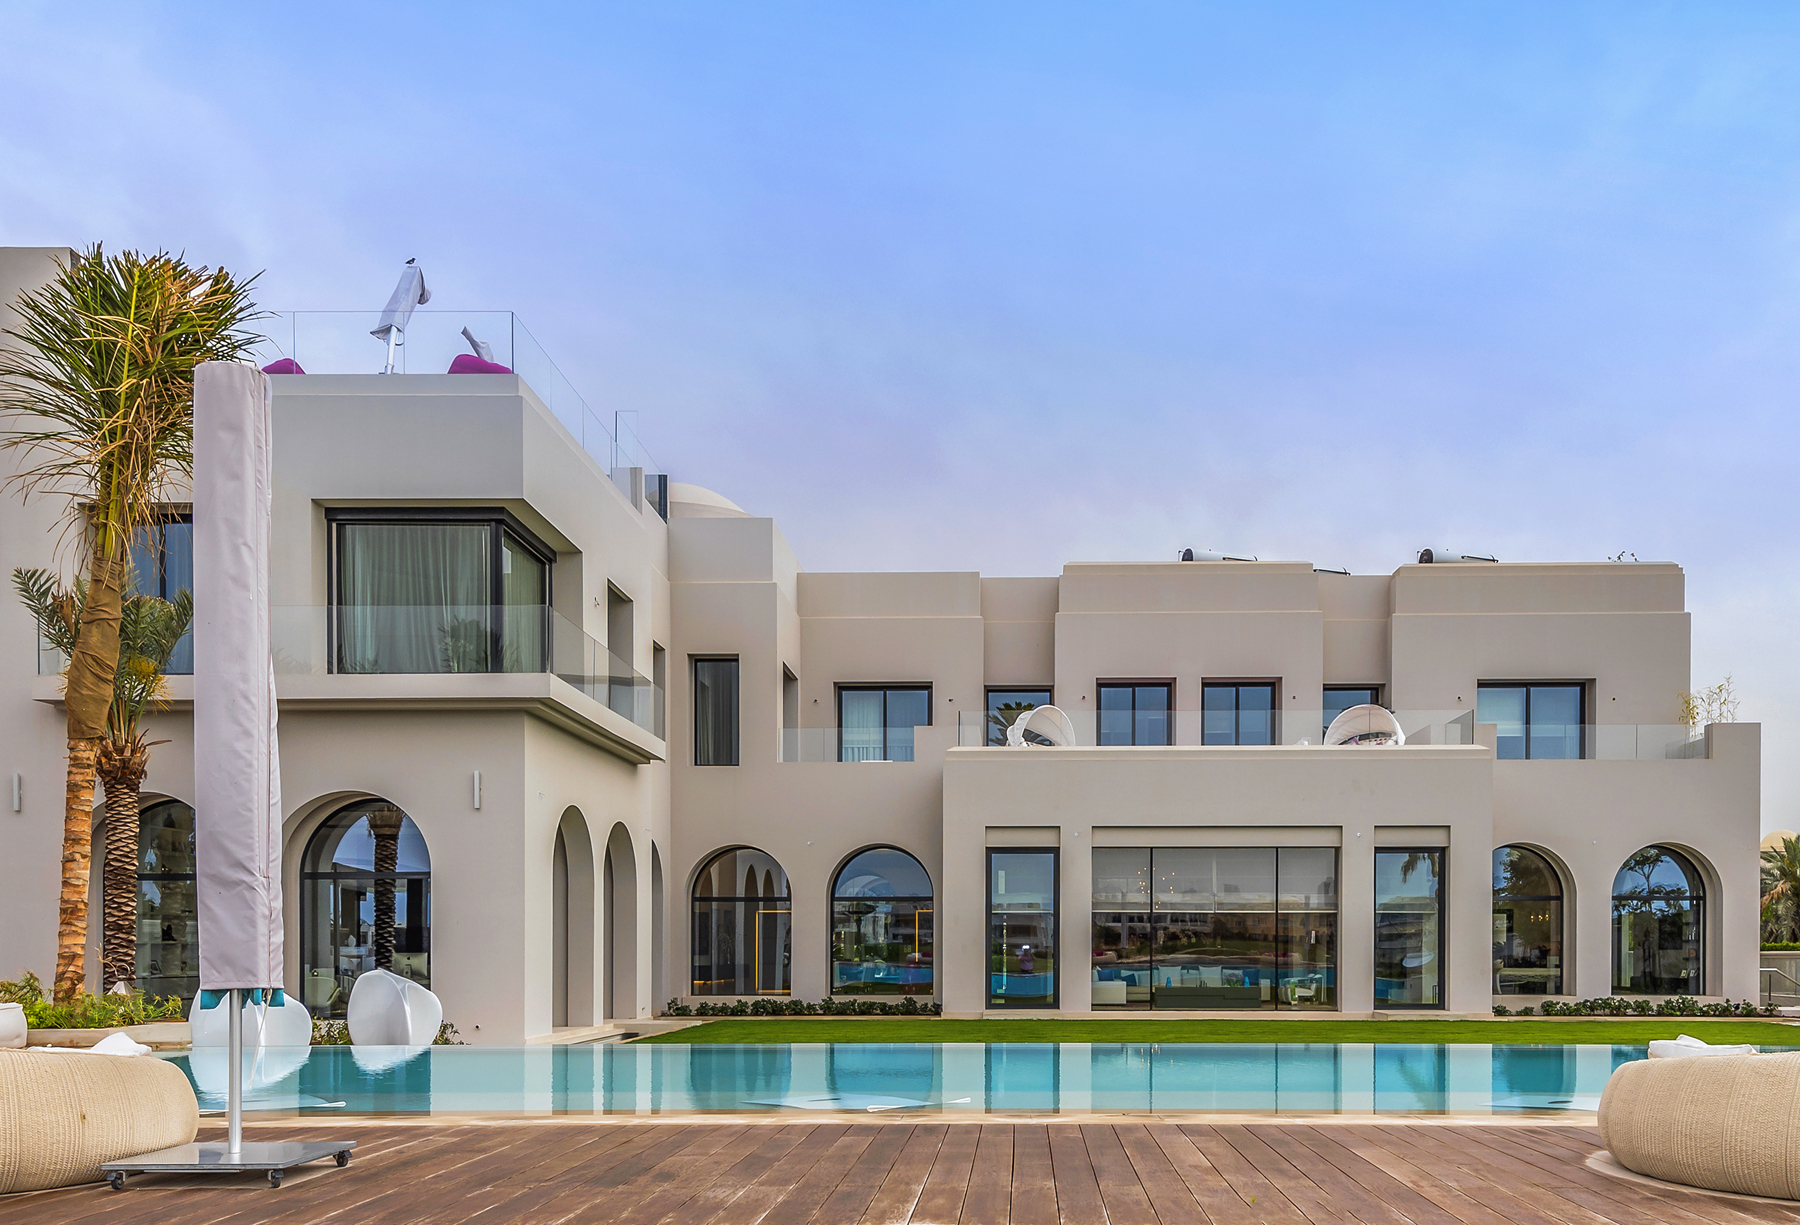 独户住宅 为 销售 在 Unique Emirates Hills Villa Dubai, 杜拜 阿联酋